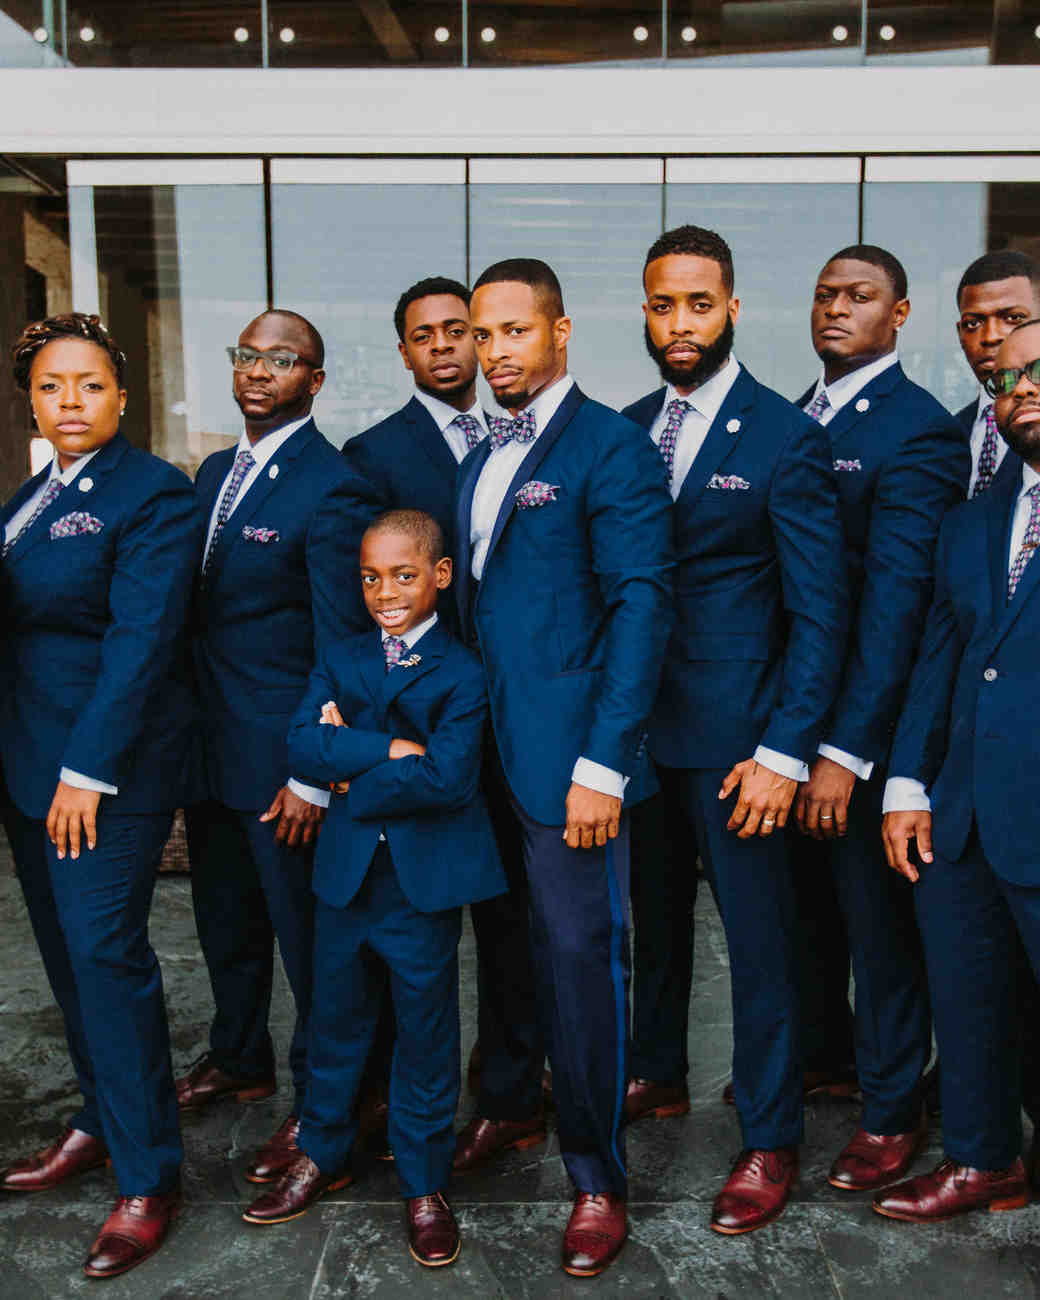 groom groomsmen groomsmaid navy blue suits